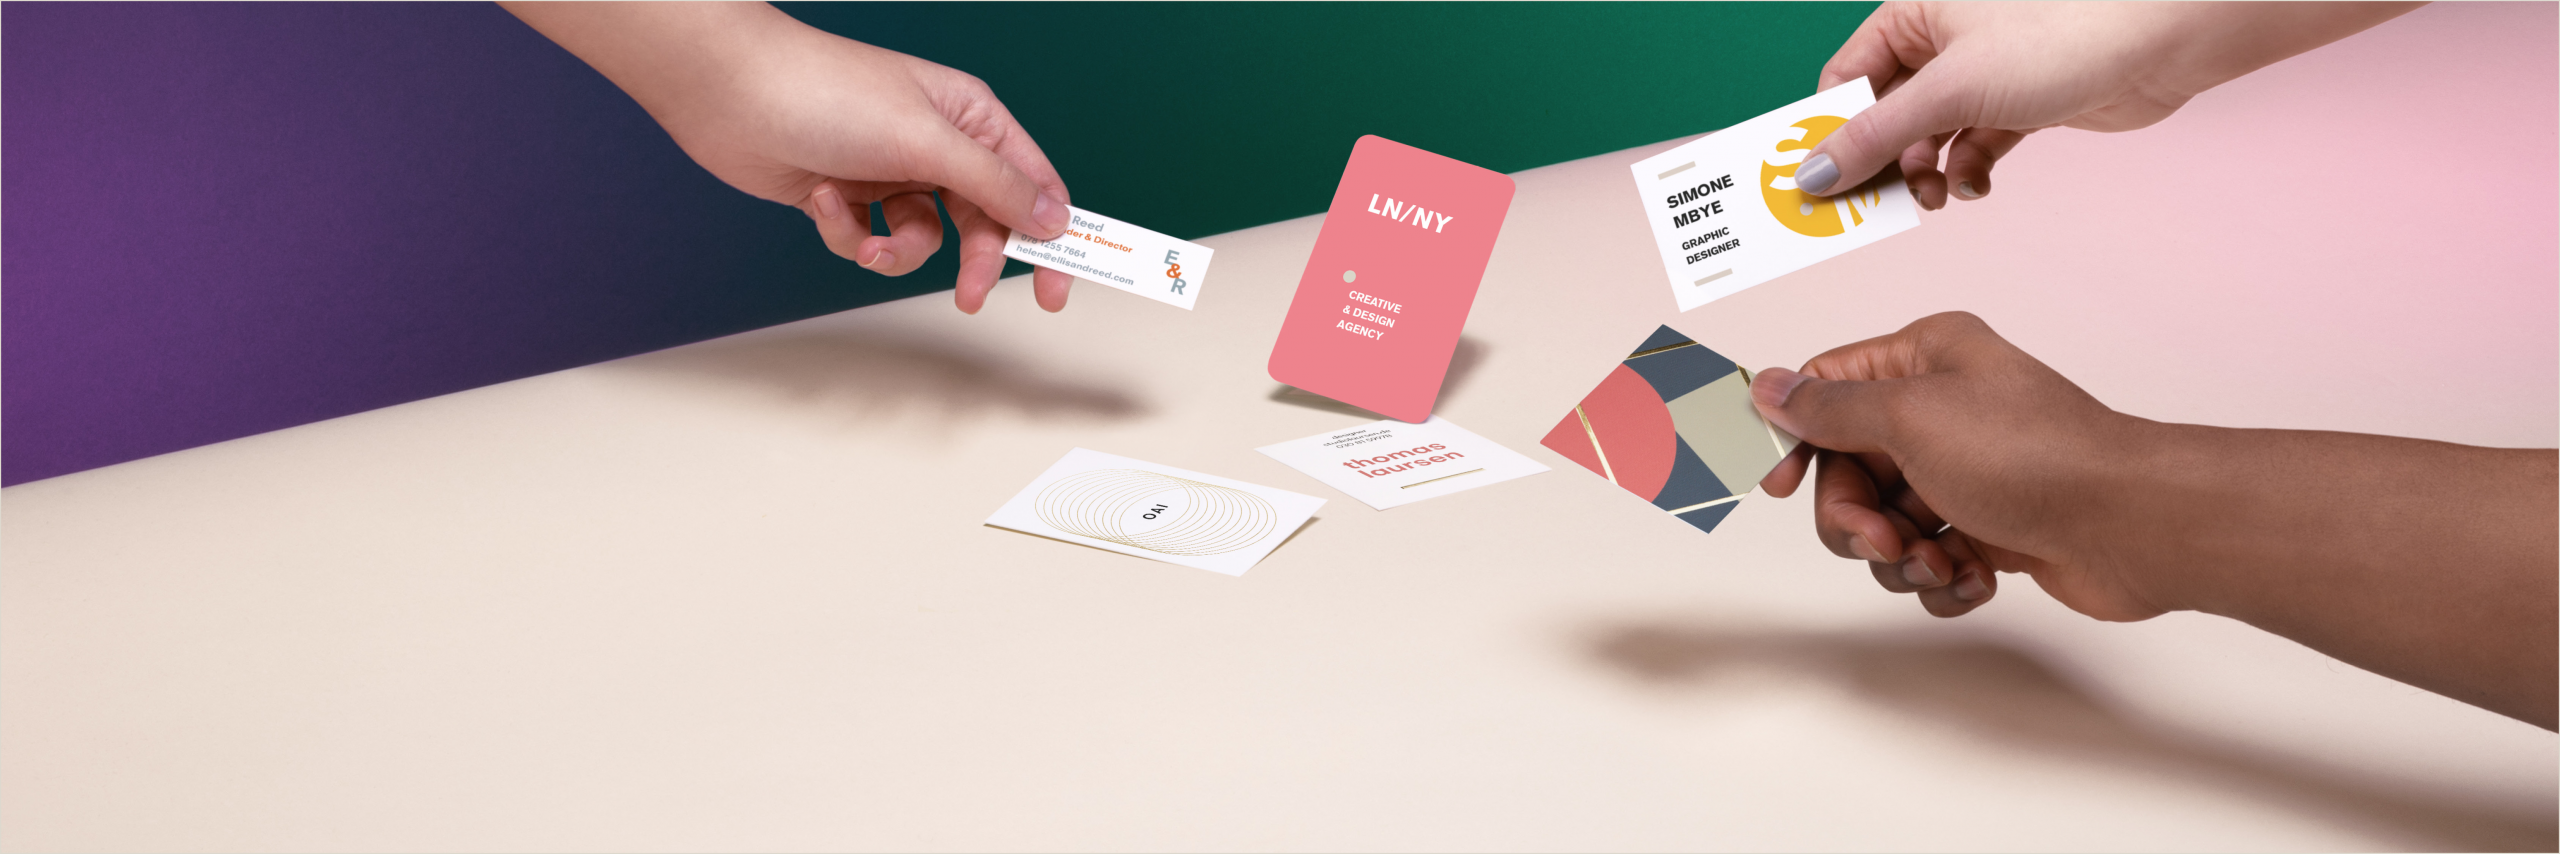 How Big Is A Business Card Business Card Size And Dimension Guide Moo Blog